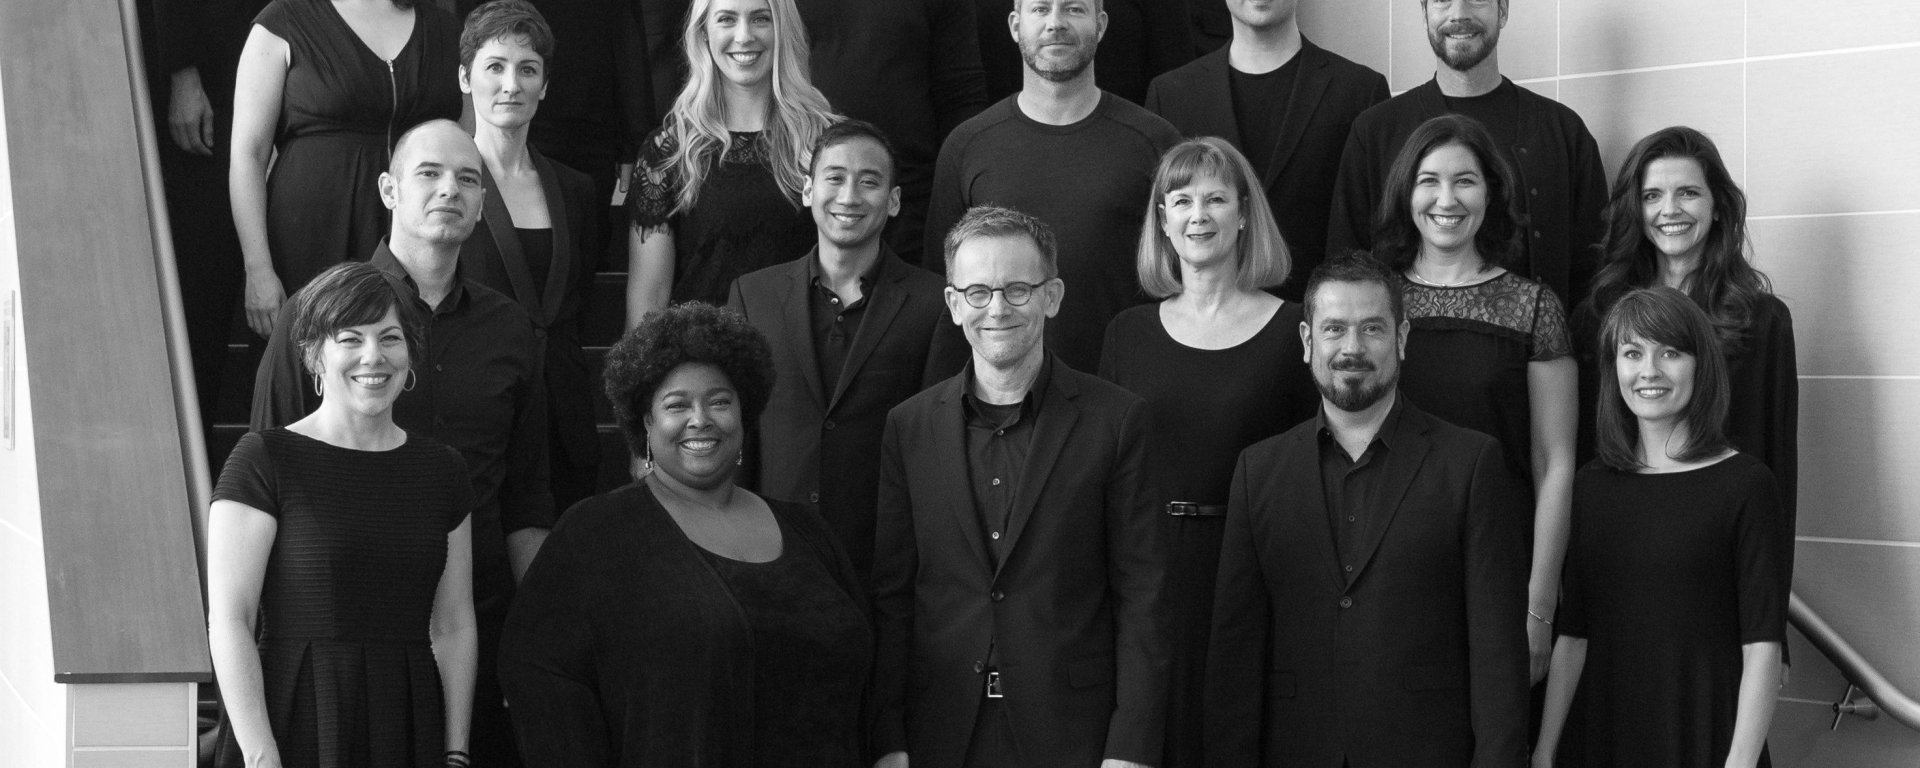 A black-and-white group shot image taken of members of the ensemble Conspirare that performed Dr. Johnson's piece, Considering Matthew Shepard. Multiple people with black evening attire are posing and smiling, center-fold.